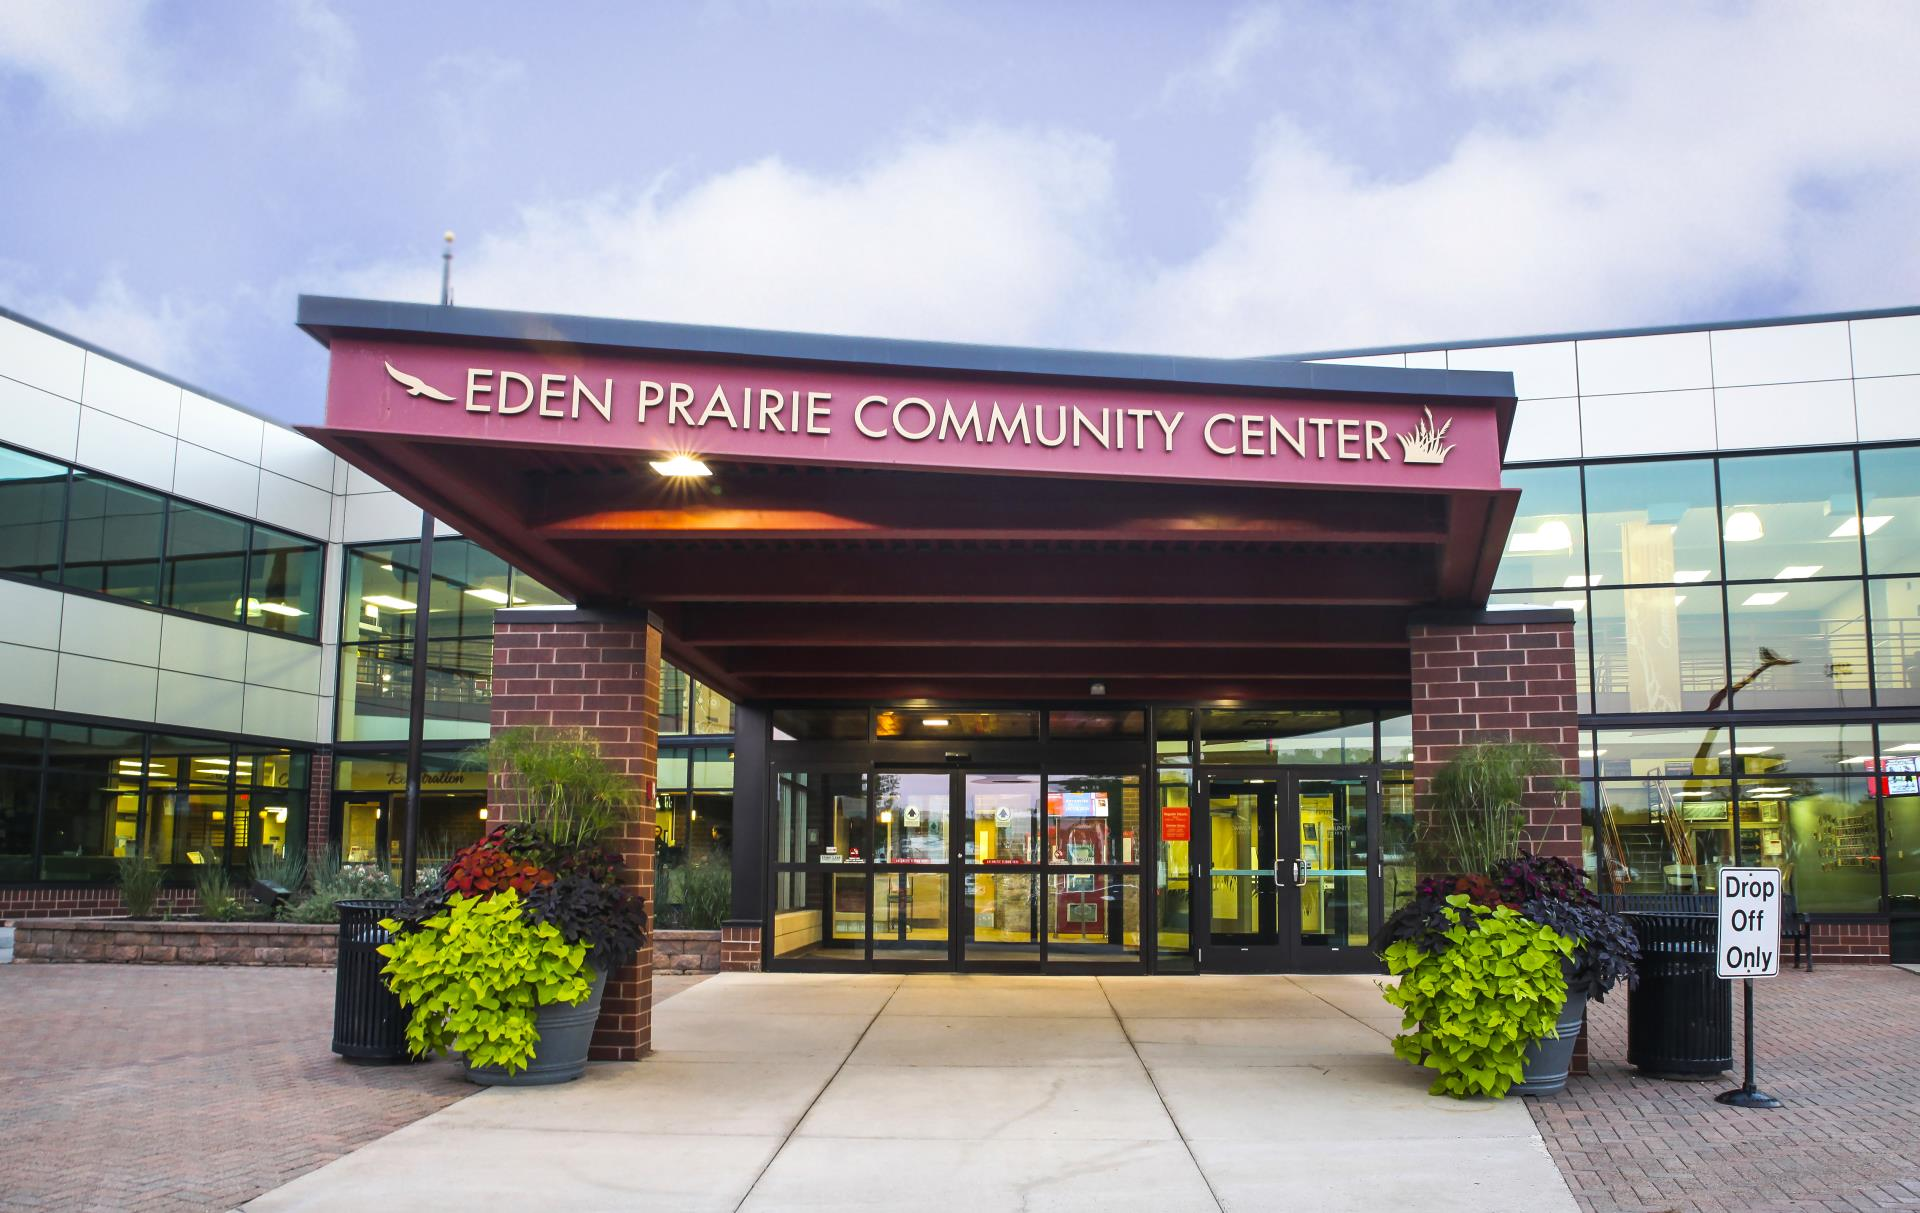 Image of Eden Prairie Community Center